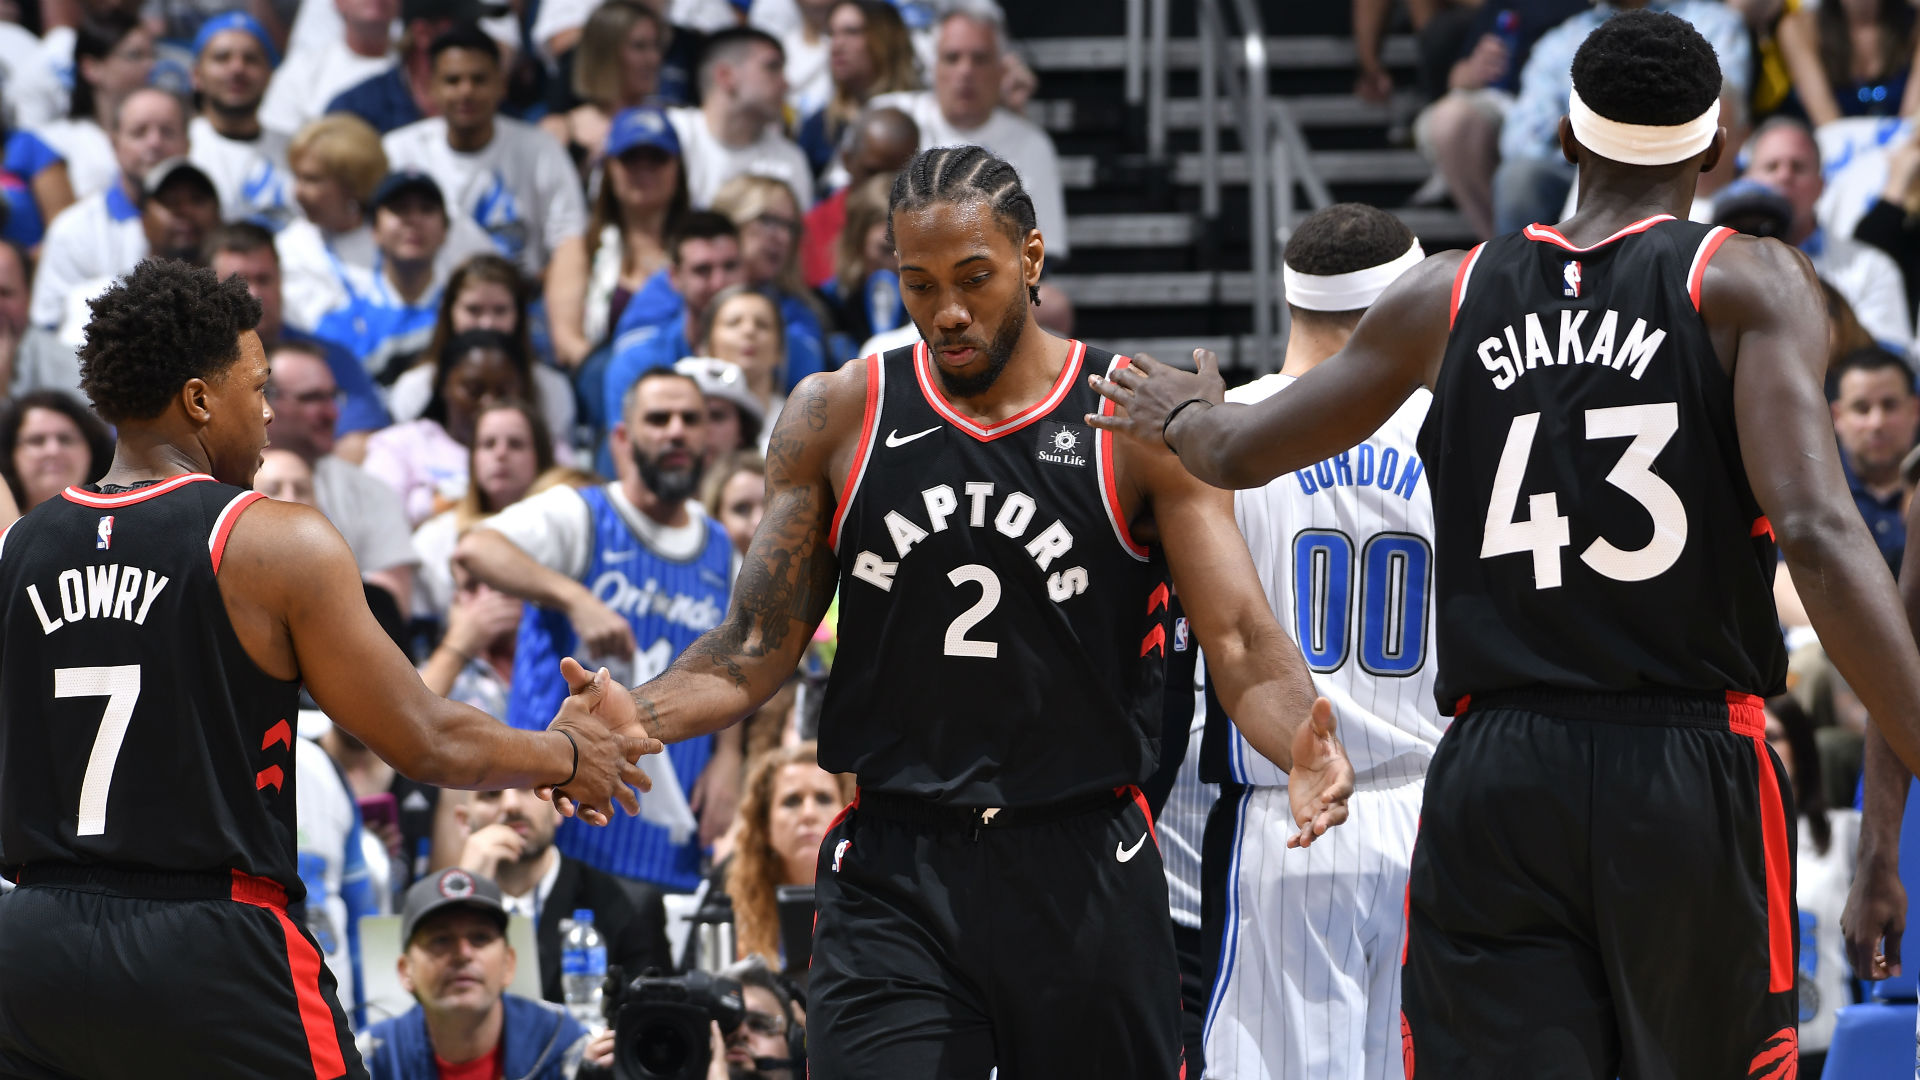 NBA Playoffs 2019: Five takeaways from the Toronto Raptors' commanding Game 4 win over the Orlando Magic